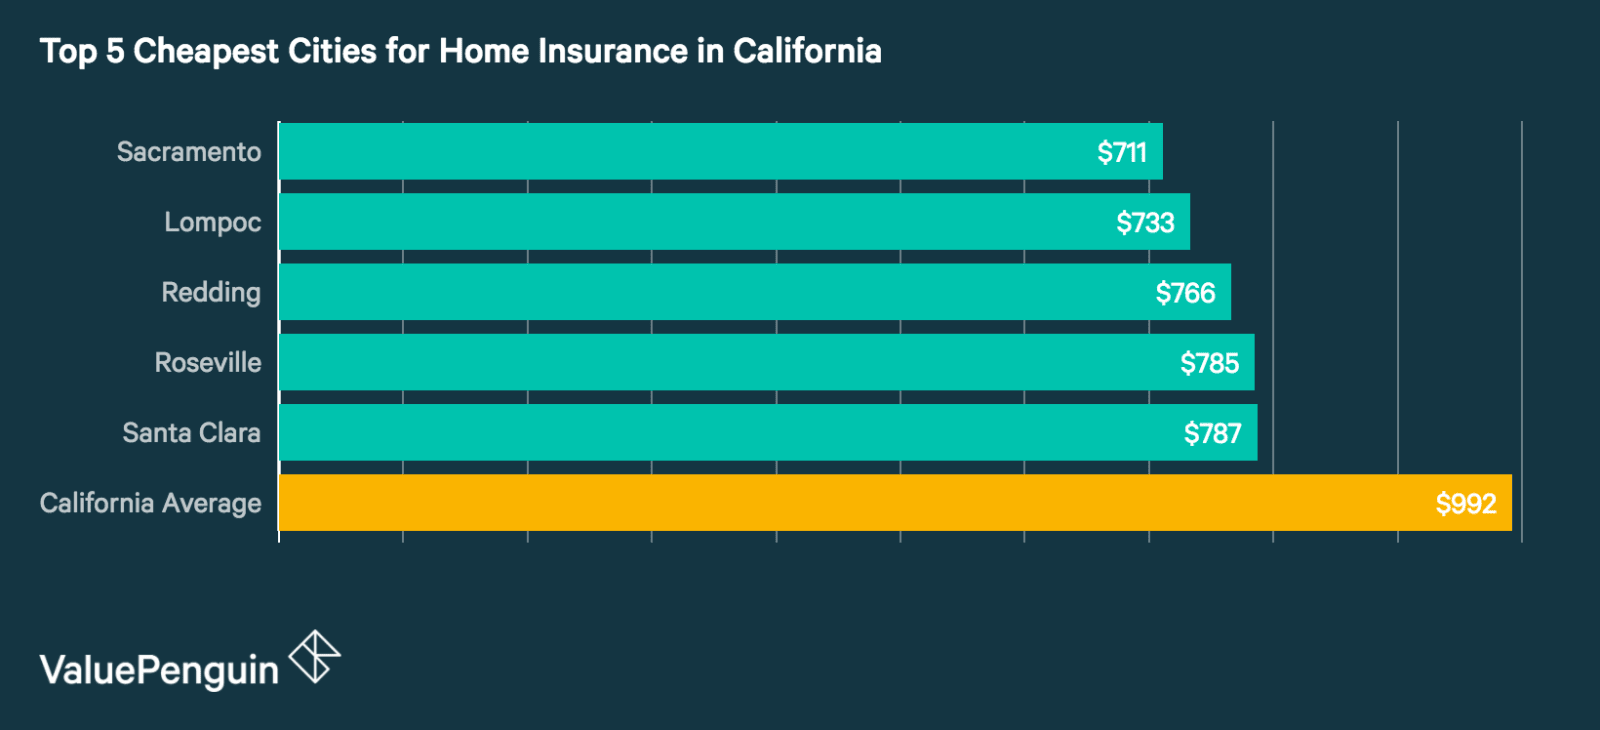 Top 5 Cheapest Cities in California for Homeowners Insurance